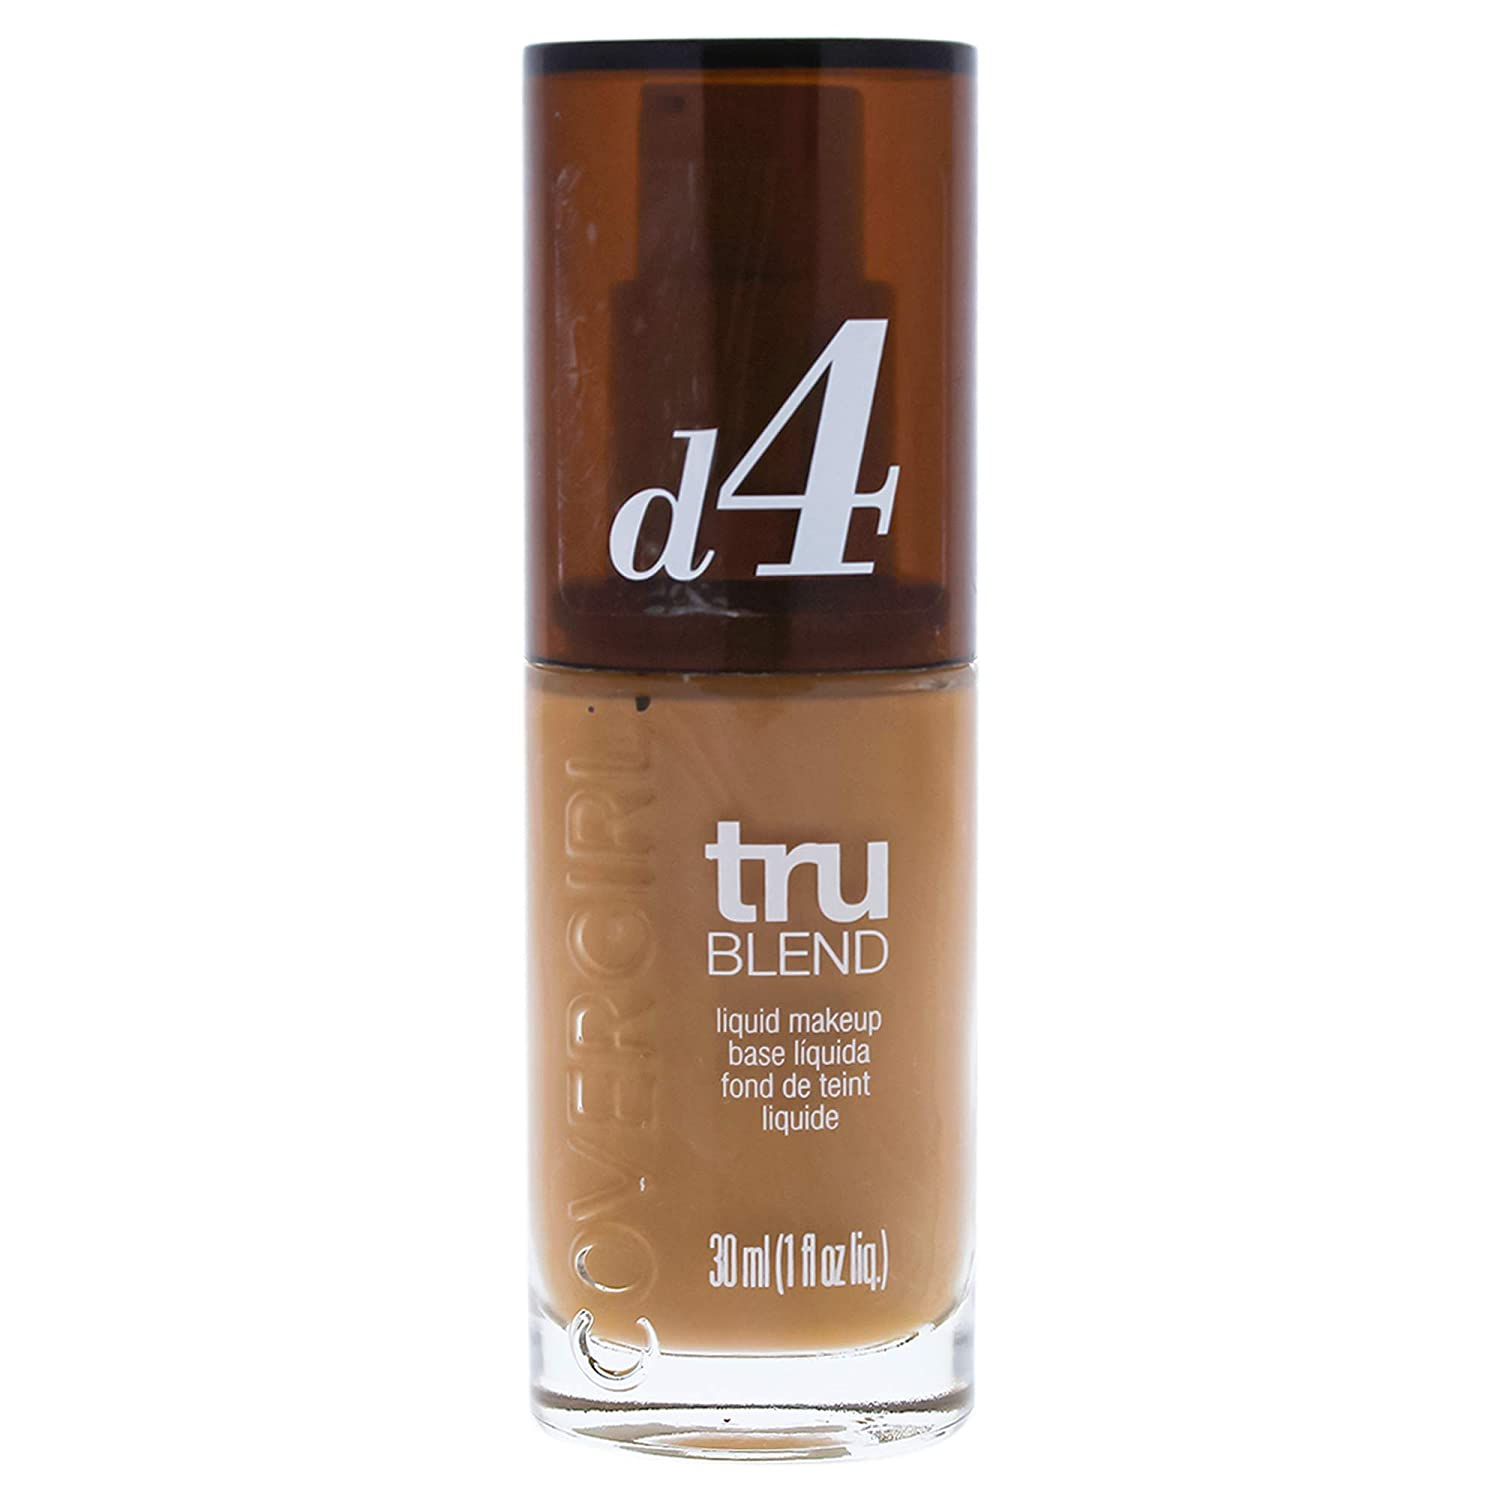 COVERGIRL truBlend Liquid Foundation Makeup Classic Tan D4, 1 oz (packaging may vary)